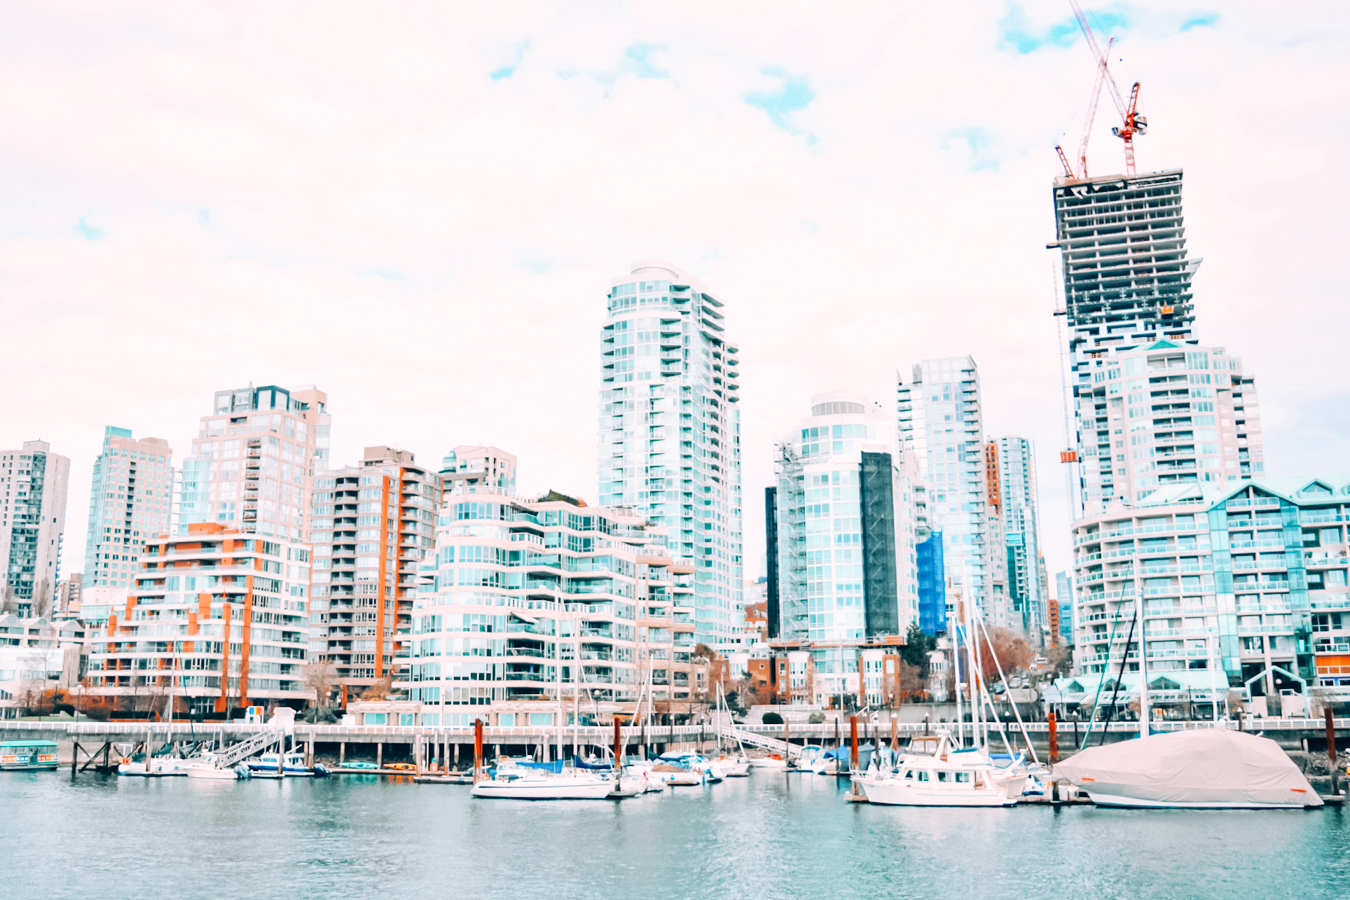 Buildings and boats in Vancouver